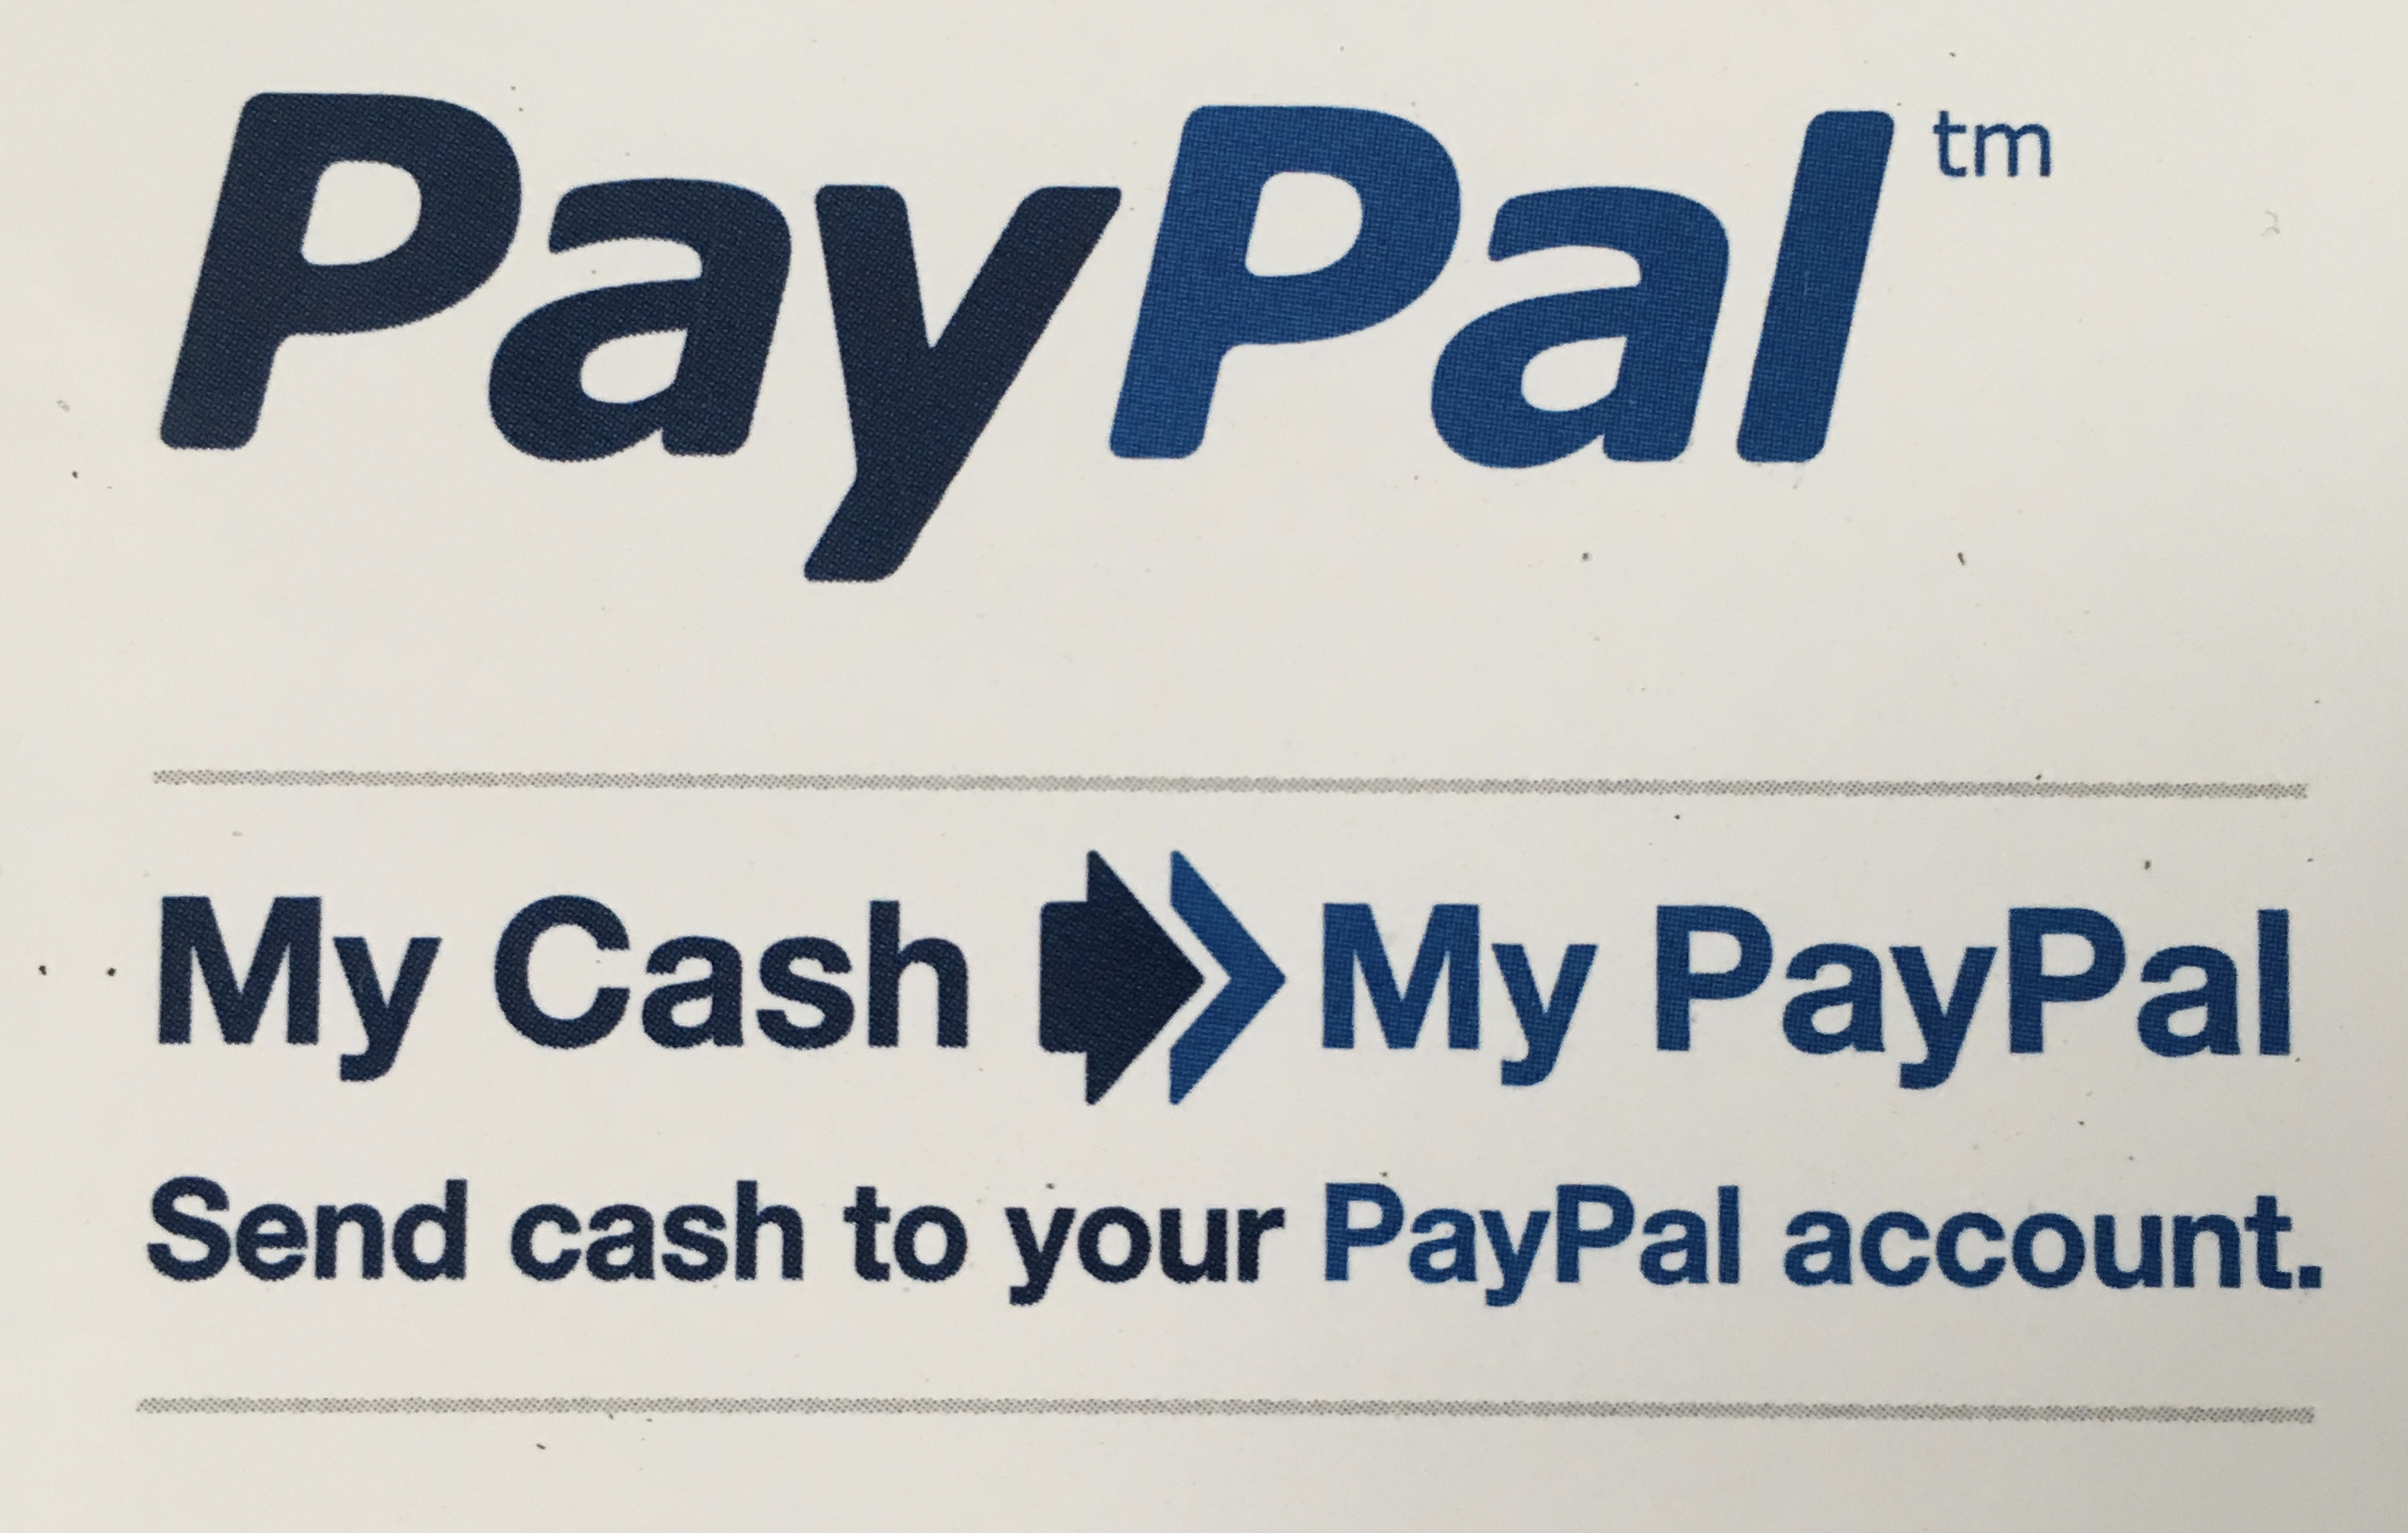 My Cash Card Website Not Working? - PayPal Community